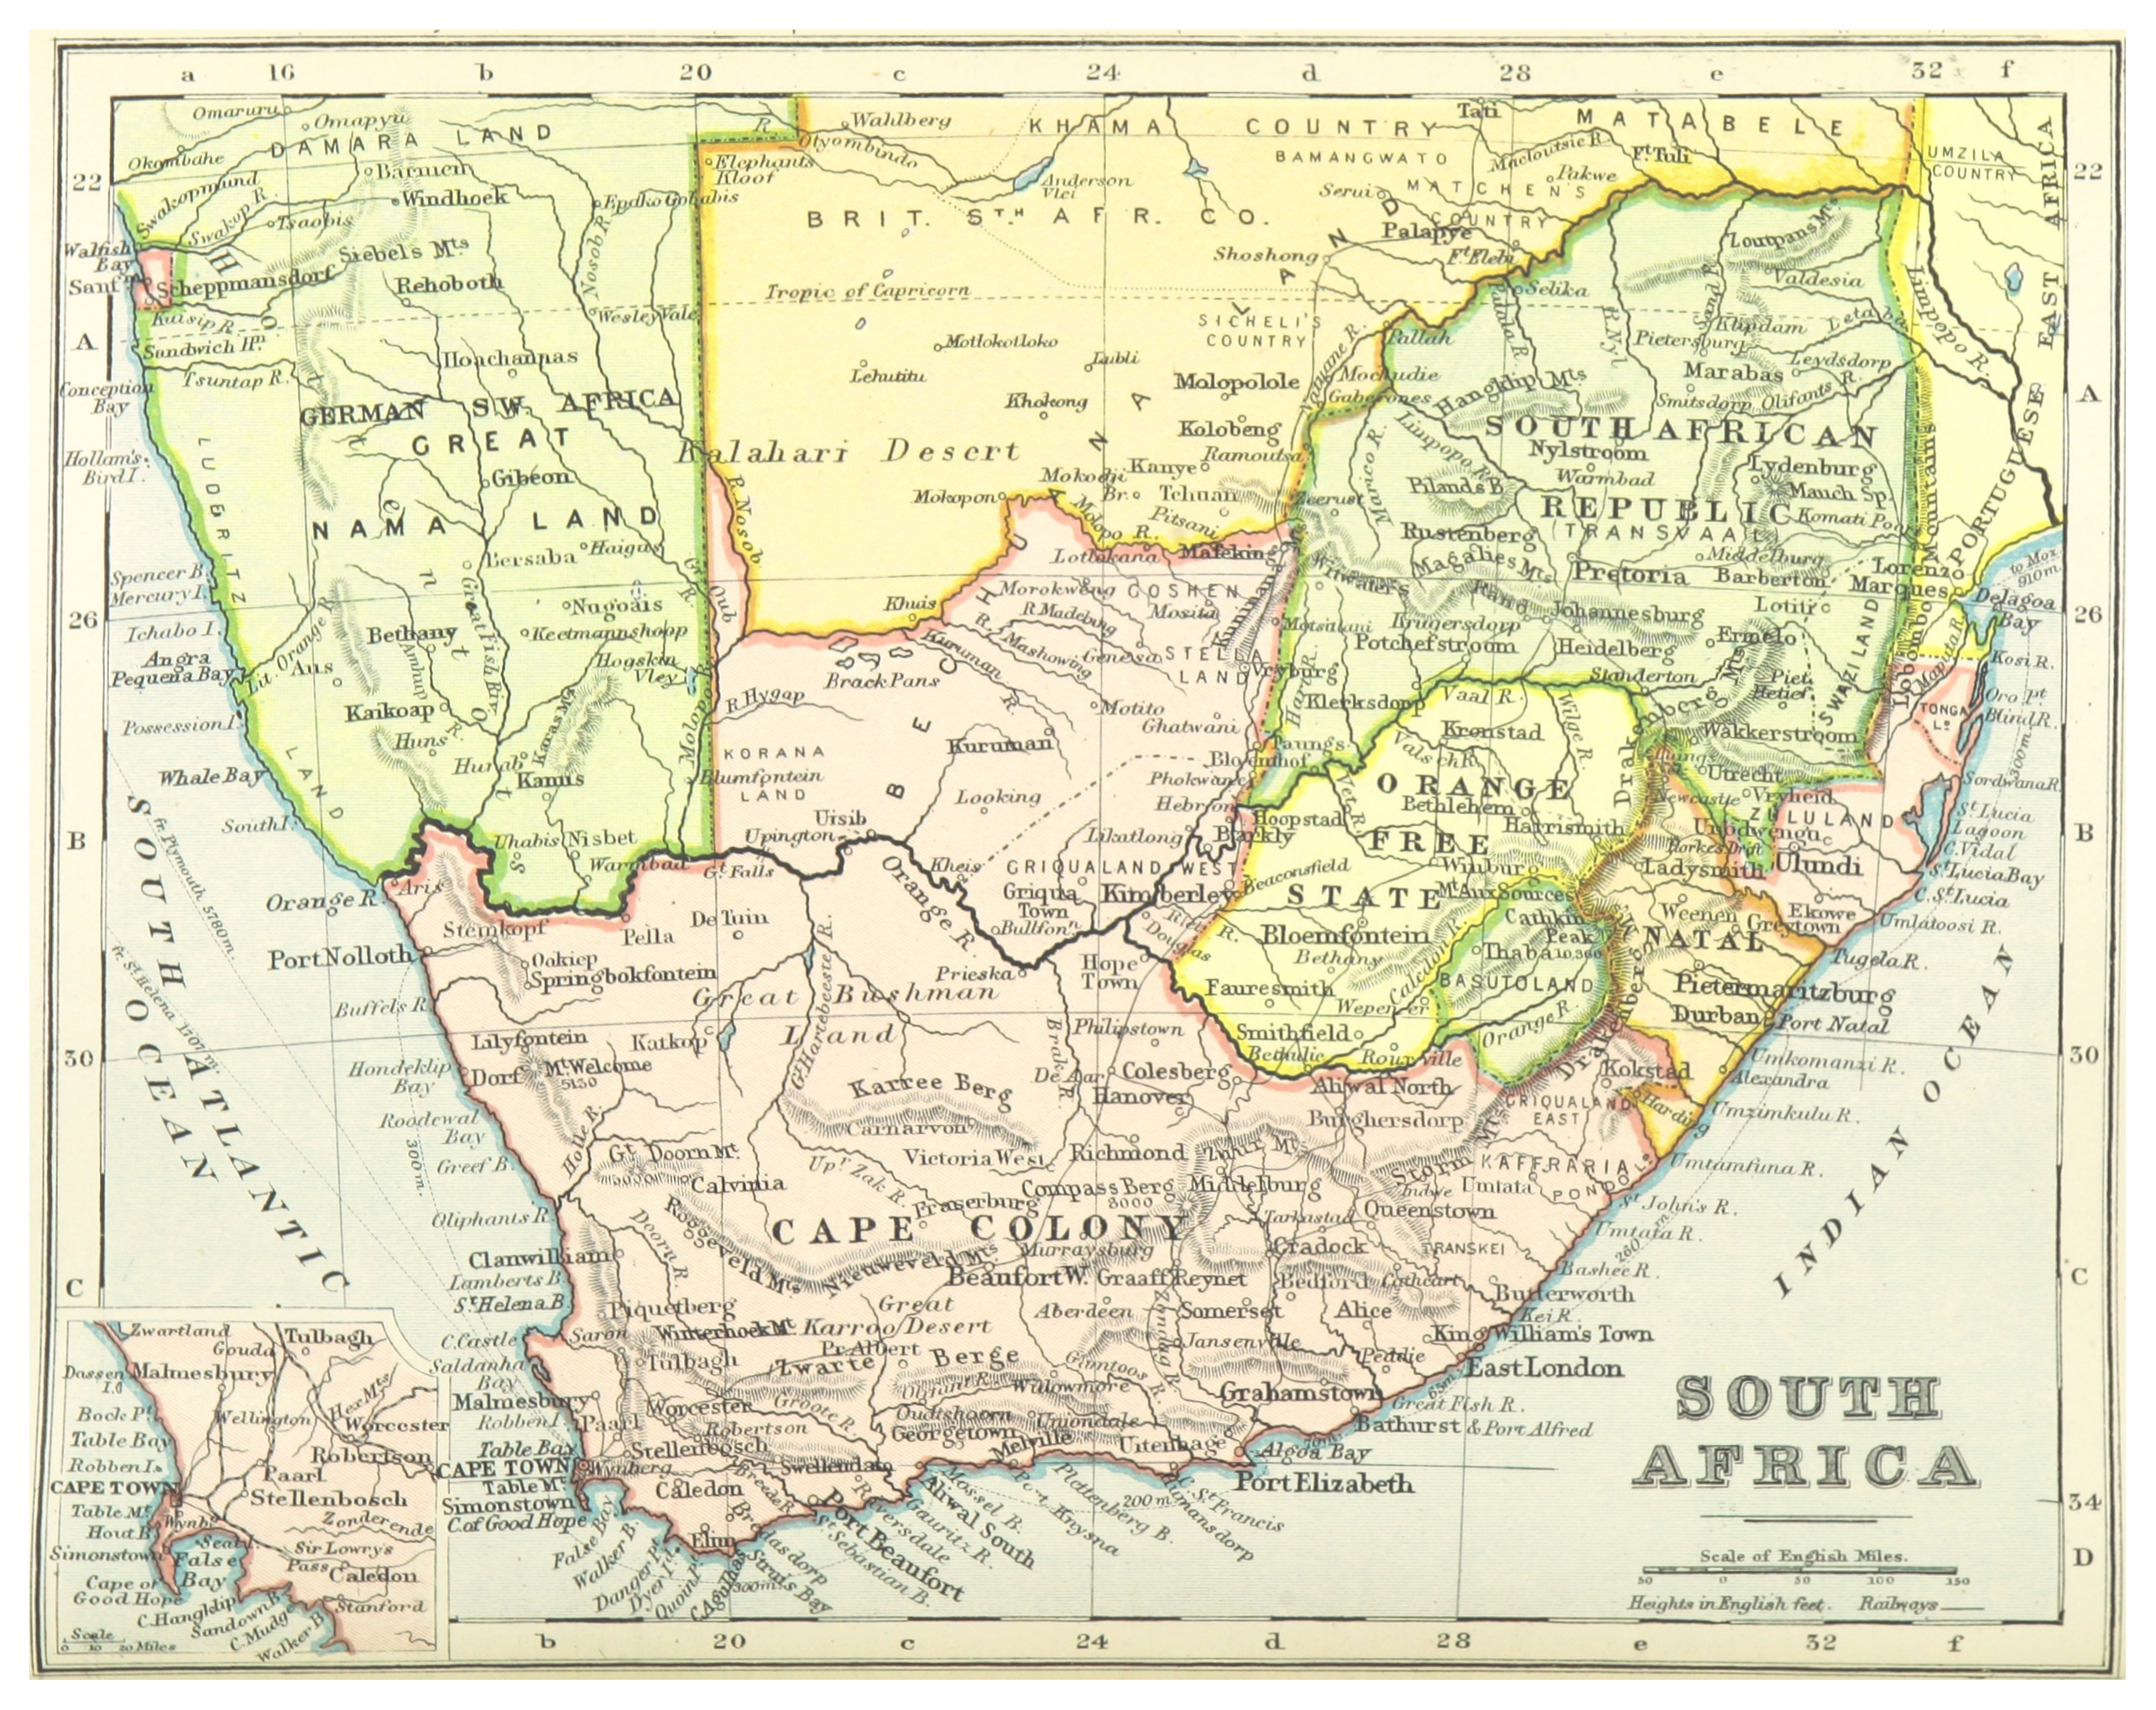 South Africa Map 1800